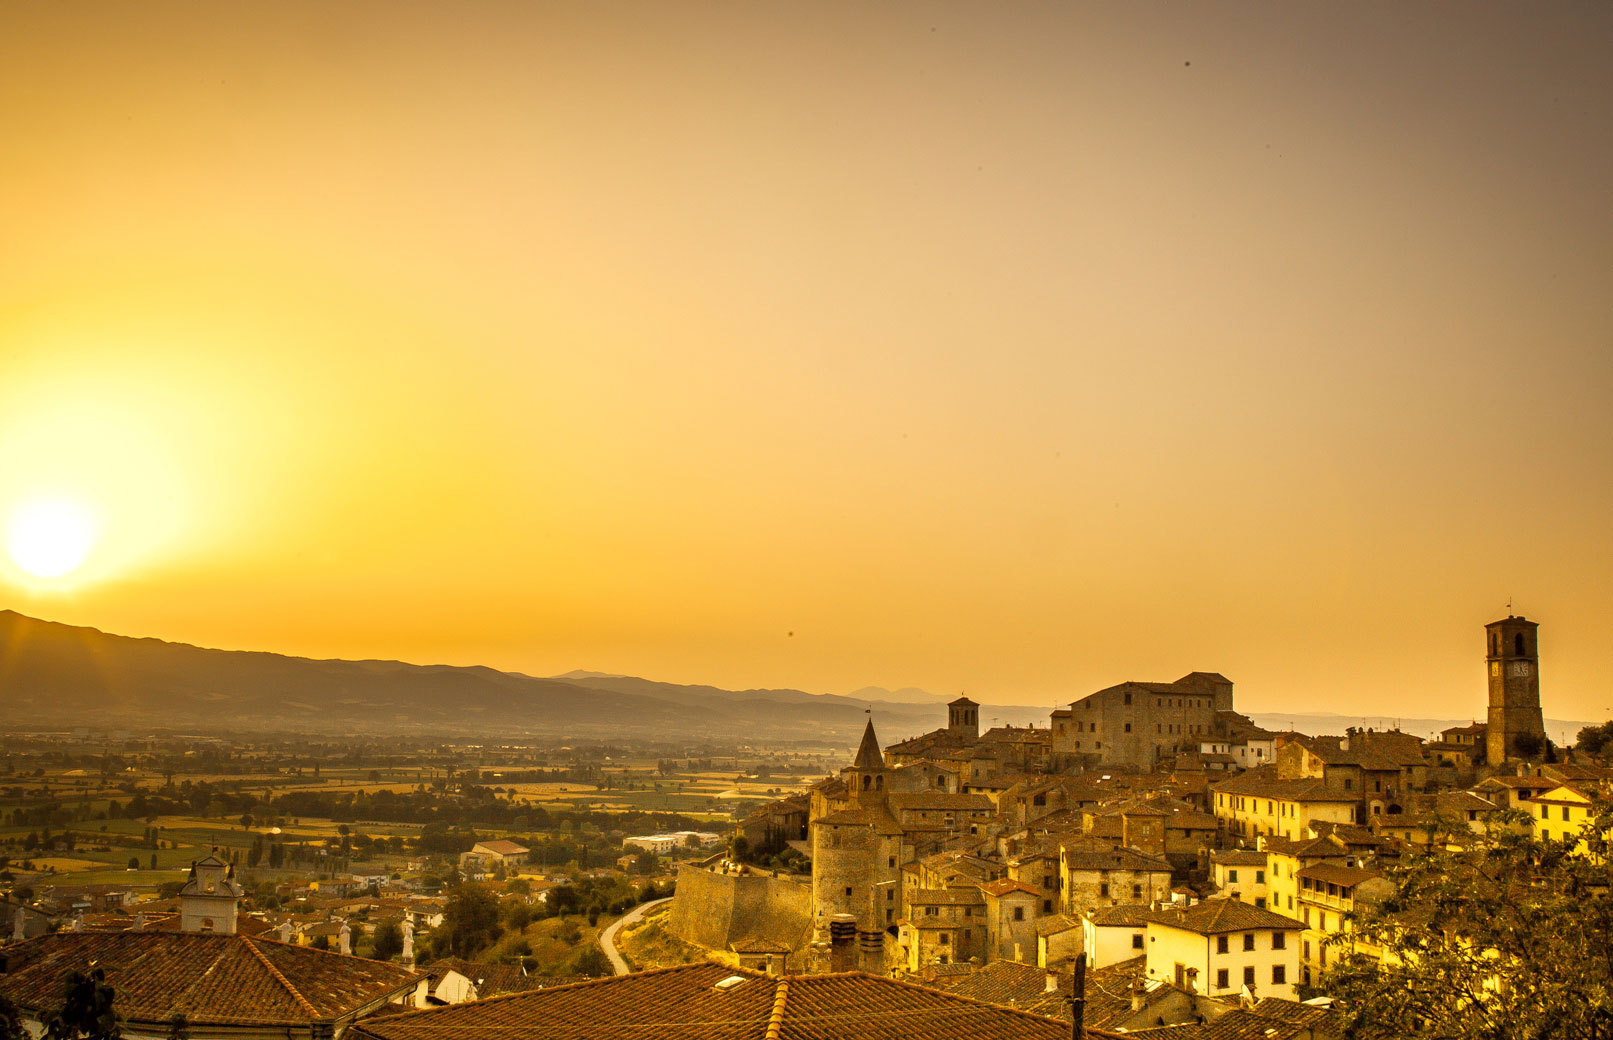 Anghiari - Anghiari: city streets and the Battle of Leonardo Da Vinci - Tuscany, Beautiful Everywhere